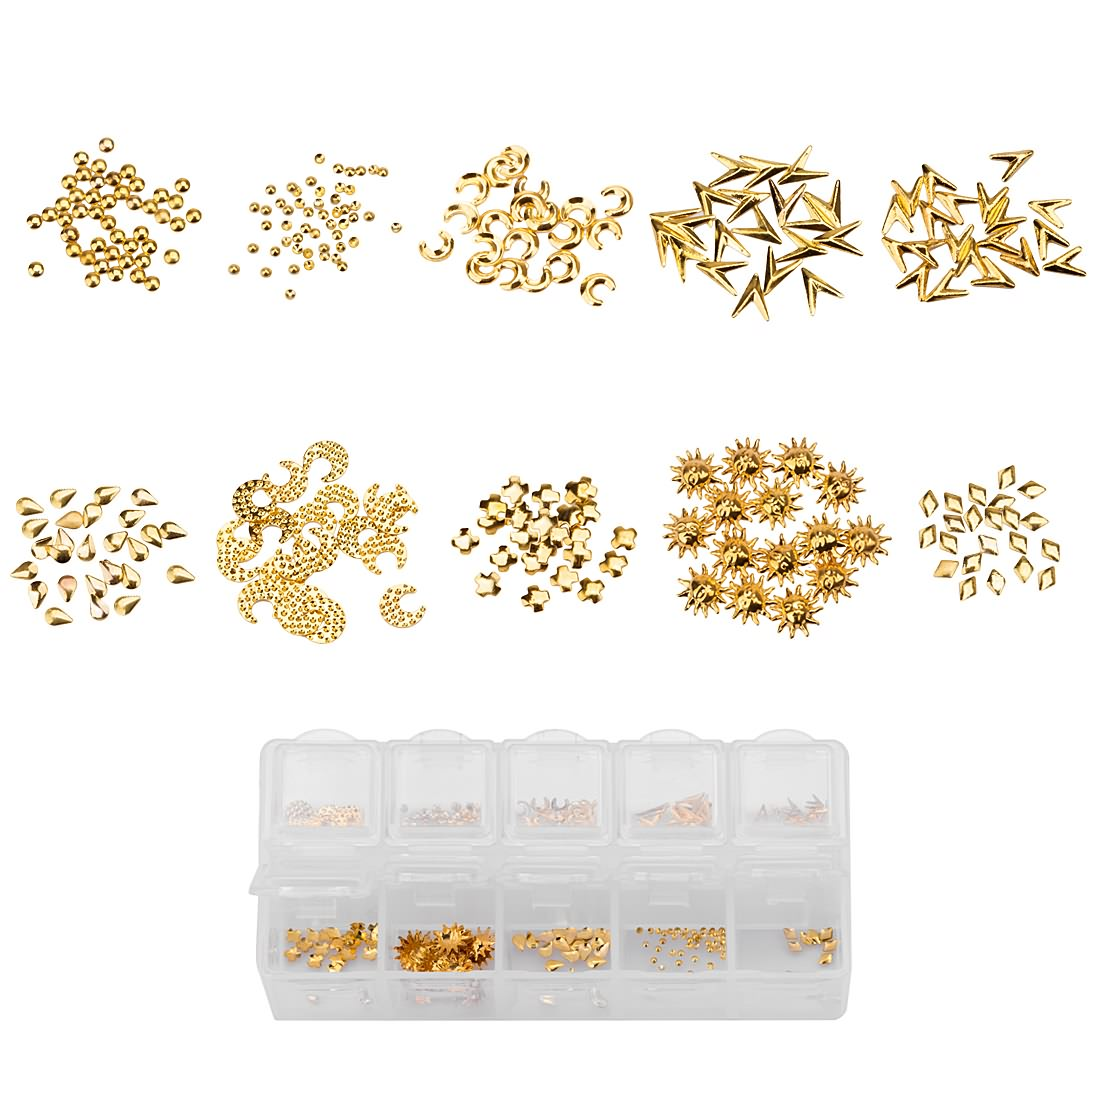 Maniology (formerly bmc) 10 Mix Design Gold Colored Nail Art Metal Studs - The Golden Goddess